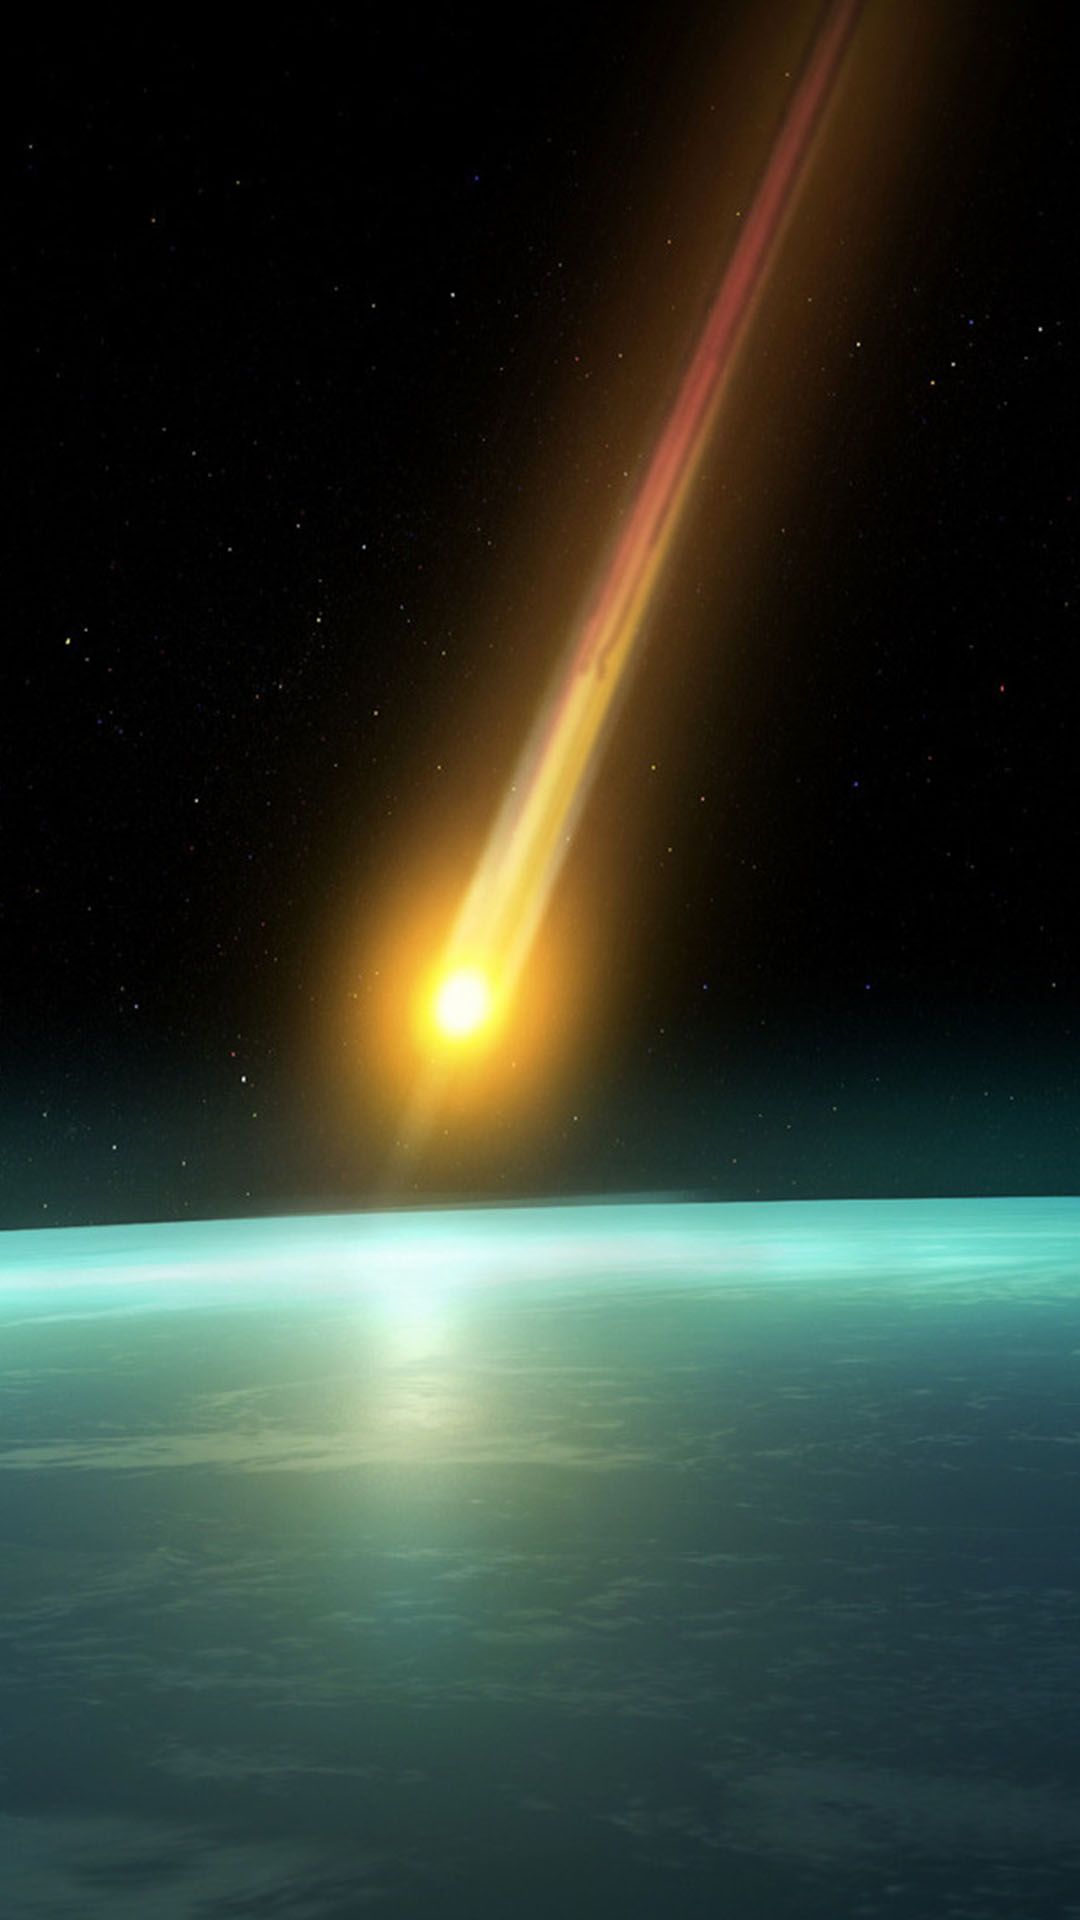 earth meteorite space abstraction wallpaper